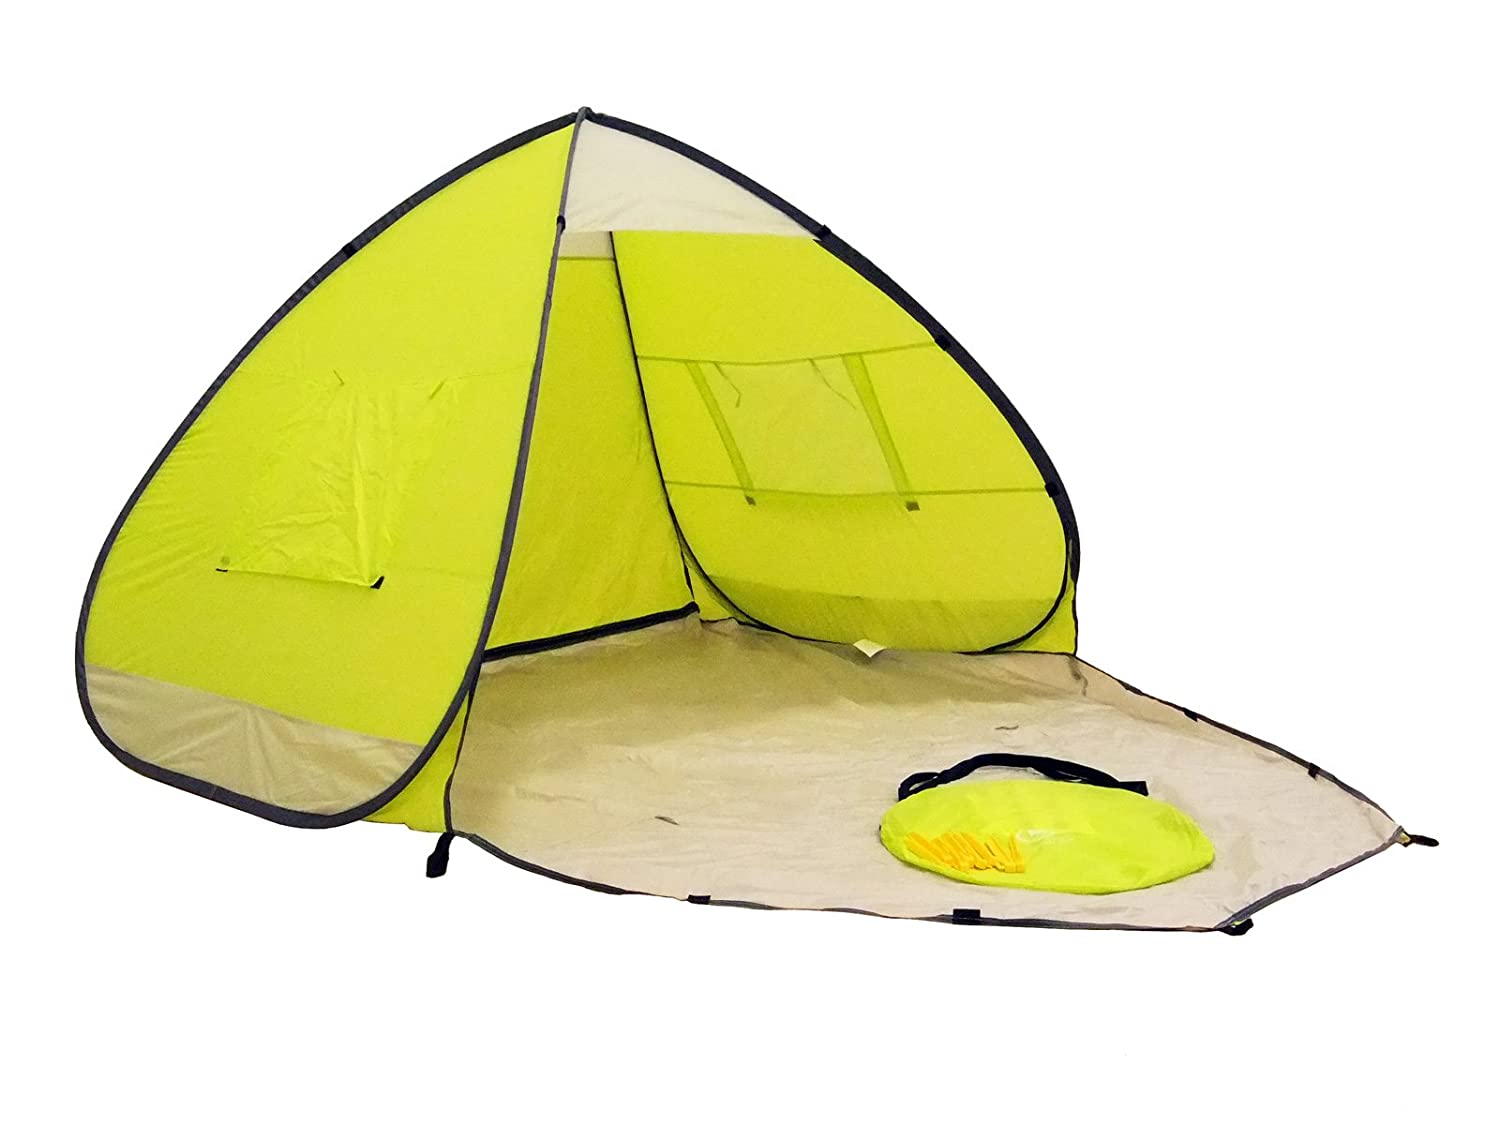 Amazon.com Genji Sports Pop Up Beach Tent with Extended Floor Sports u0026 Outdoors  sc 1 st  Amazon.com & Amazon.com: Genji Sports Pop Up Beach Tent with Extended Floor ...